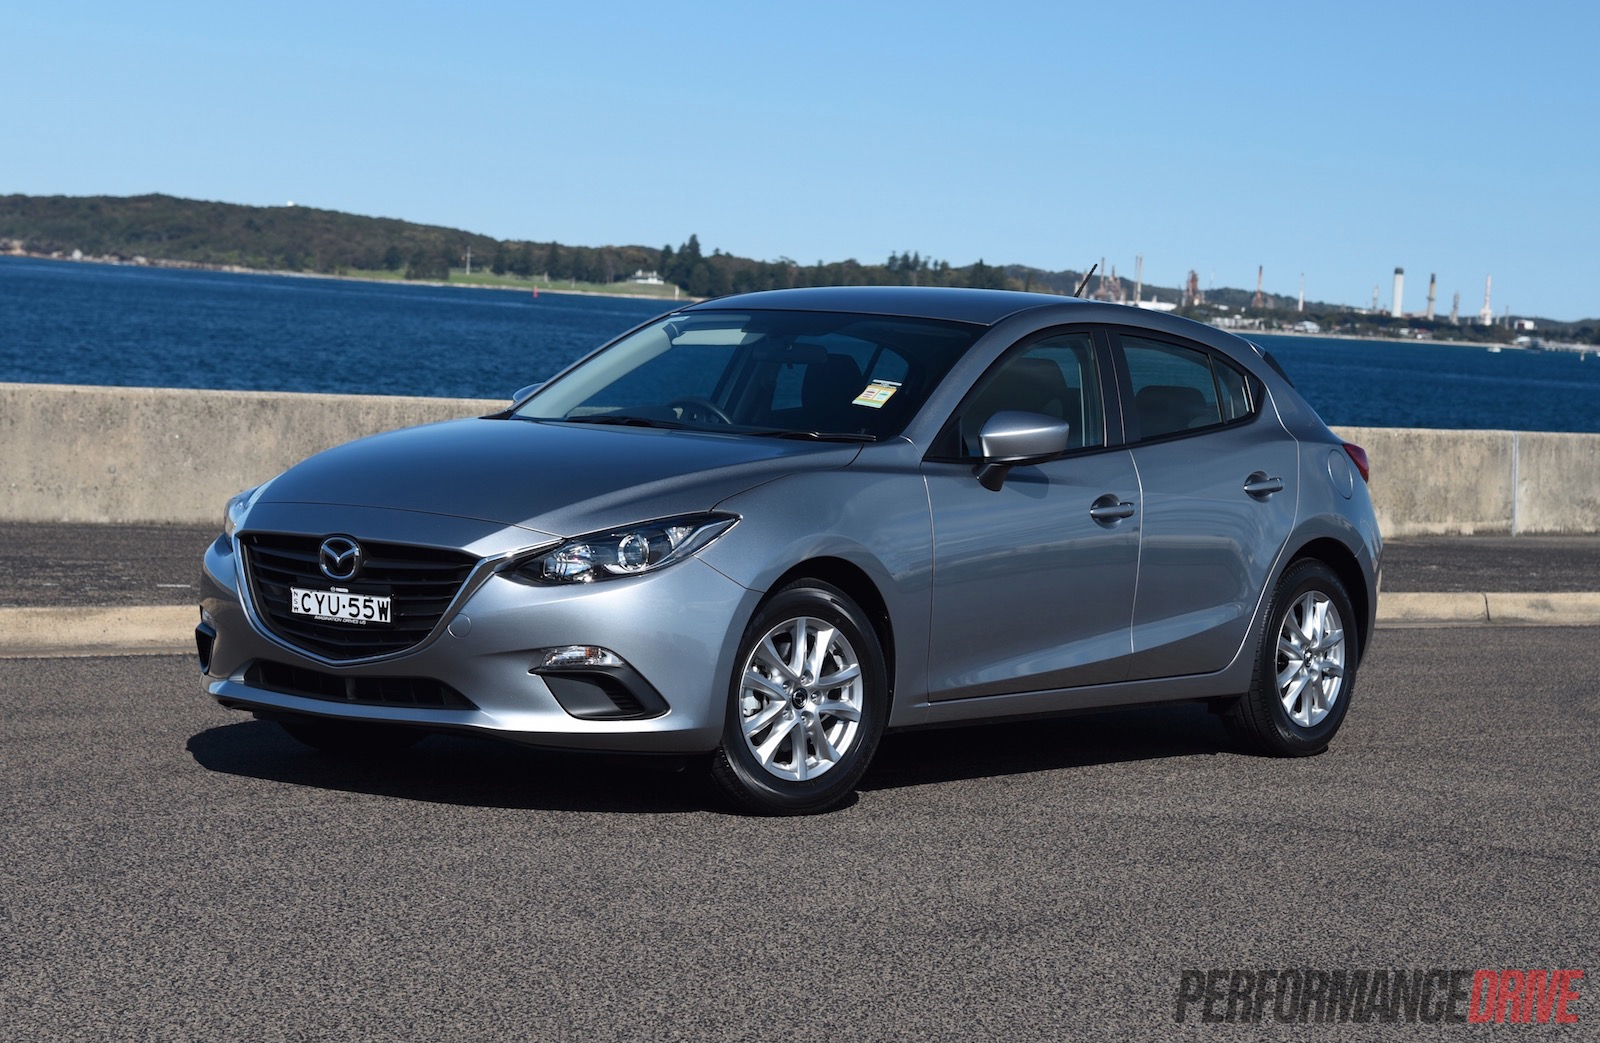 2015 mazda3 neo review video performancedrive. Black Bedroom Furniture Sets. Home Design Ideas